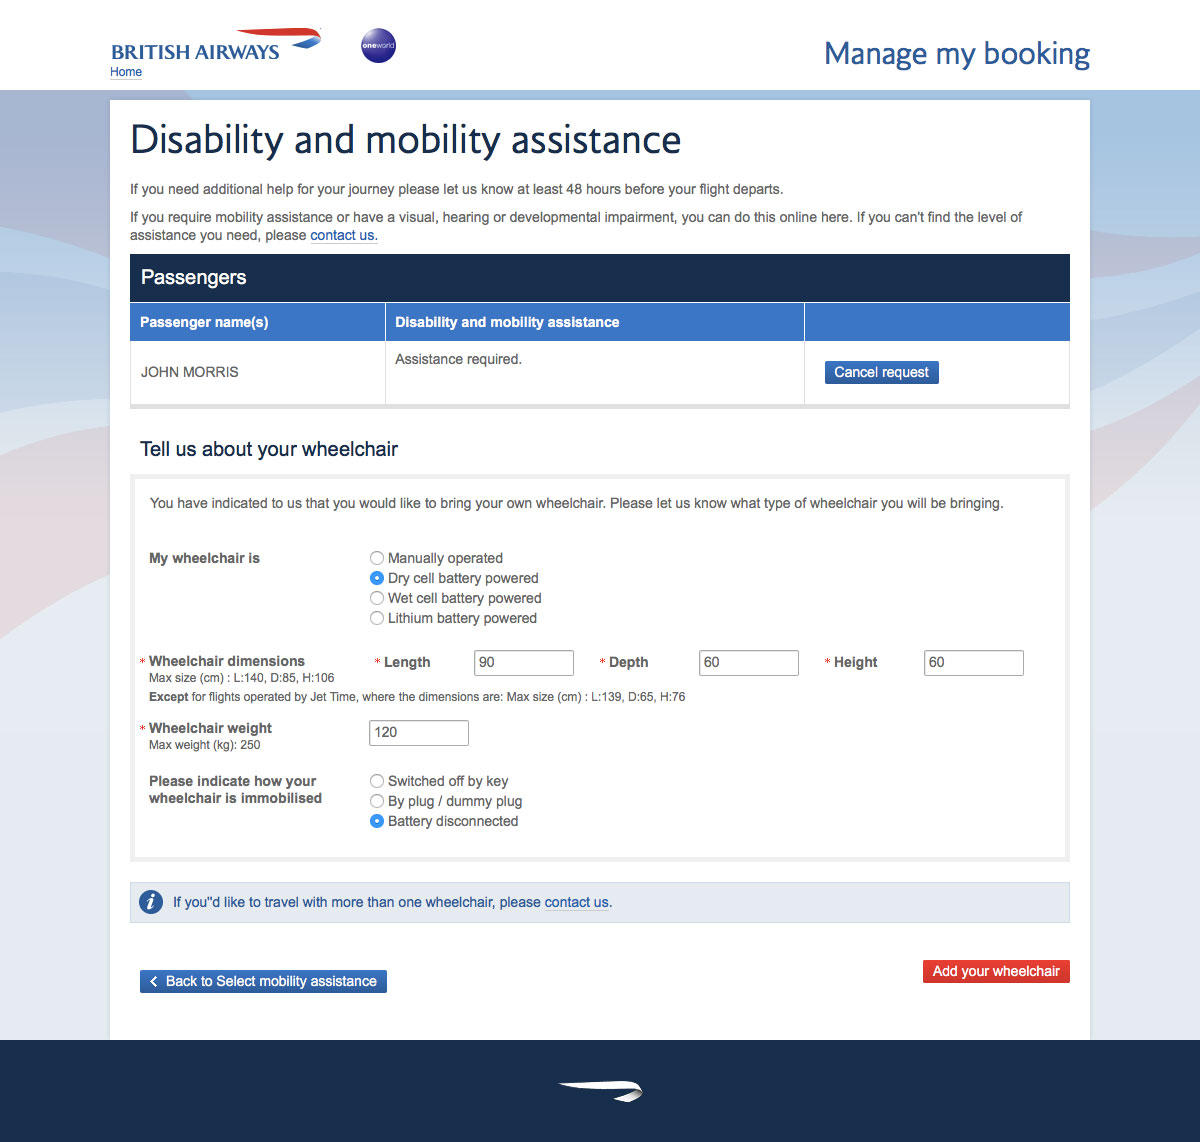 Form to provide information about your personal wheelchair on the British Airways website